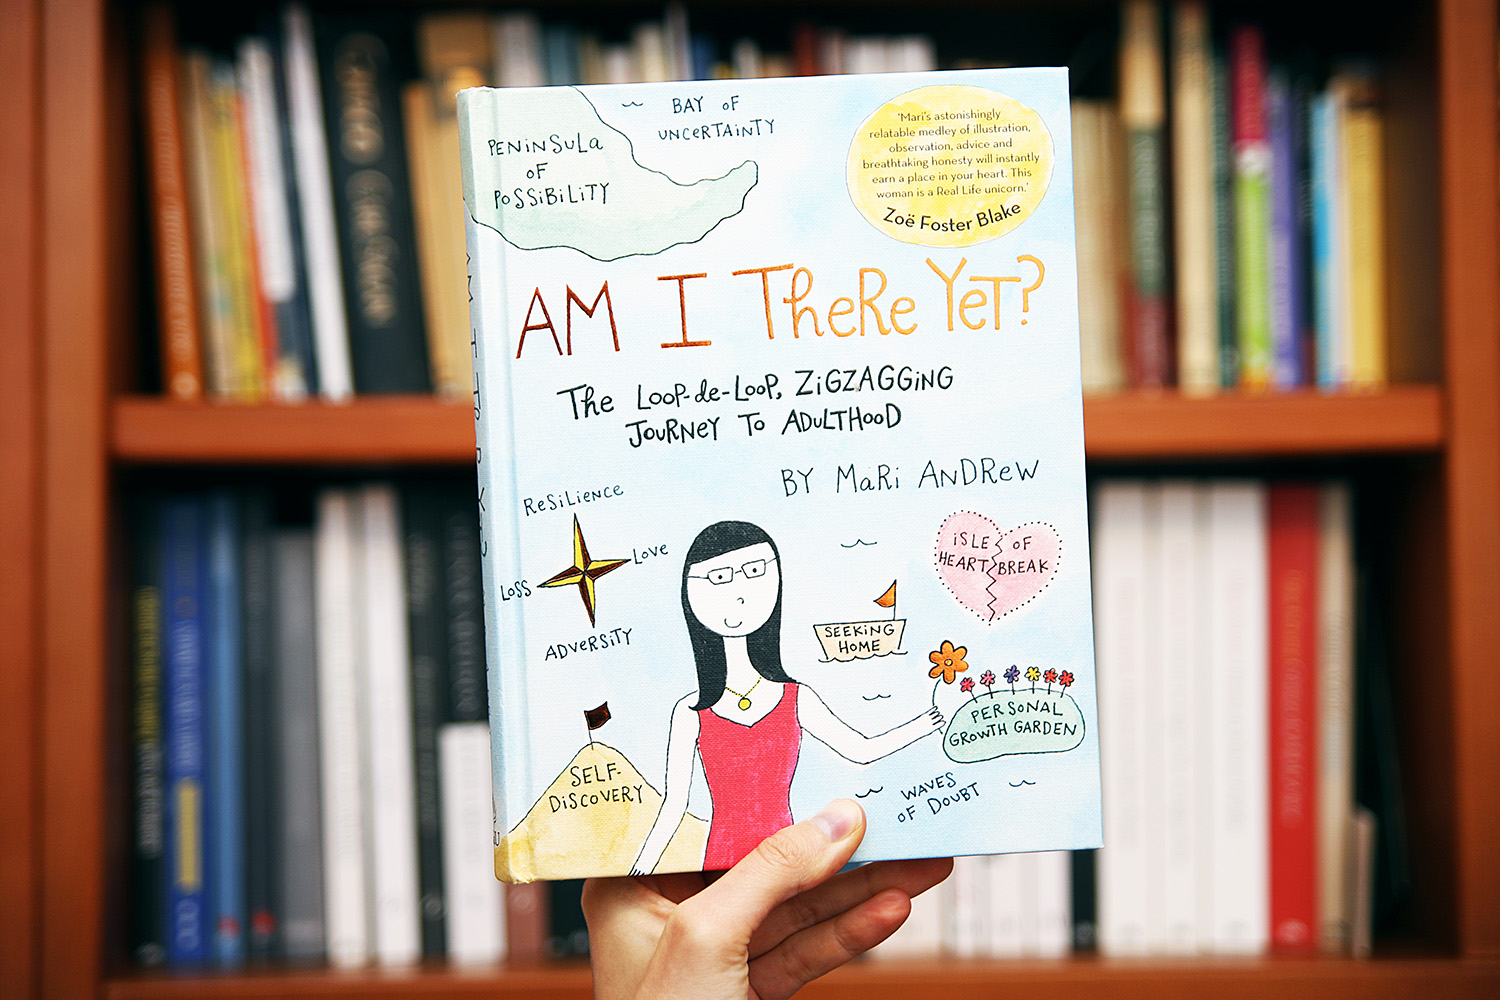 Am I There Yet? - The perks of becoming an adult